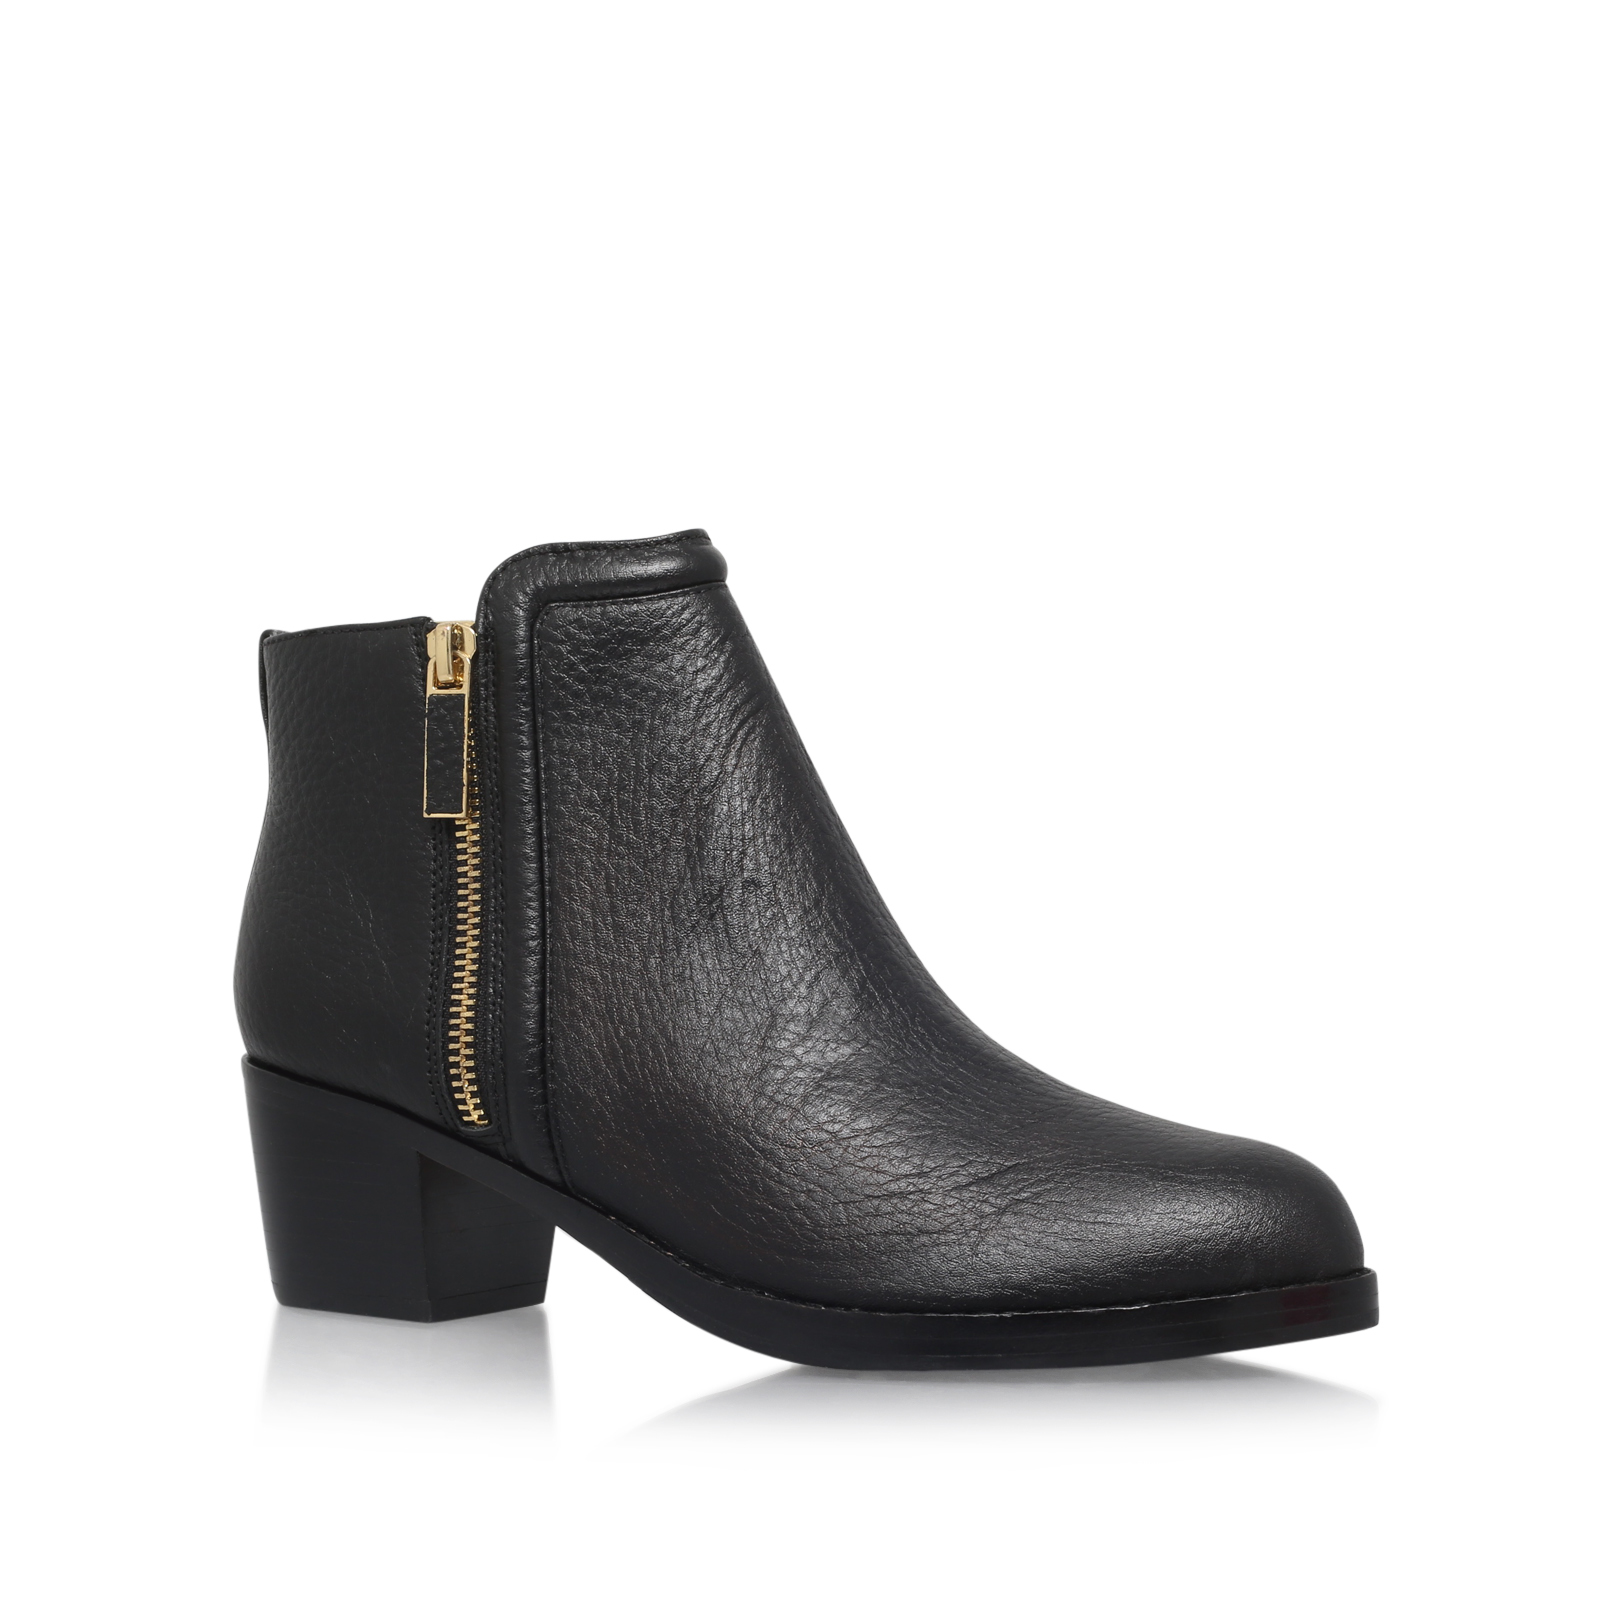 MID HEEL ANKLE BOOT